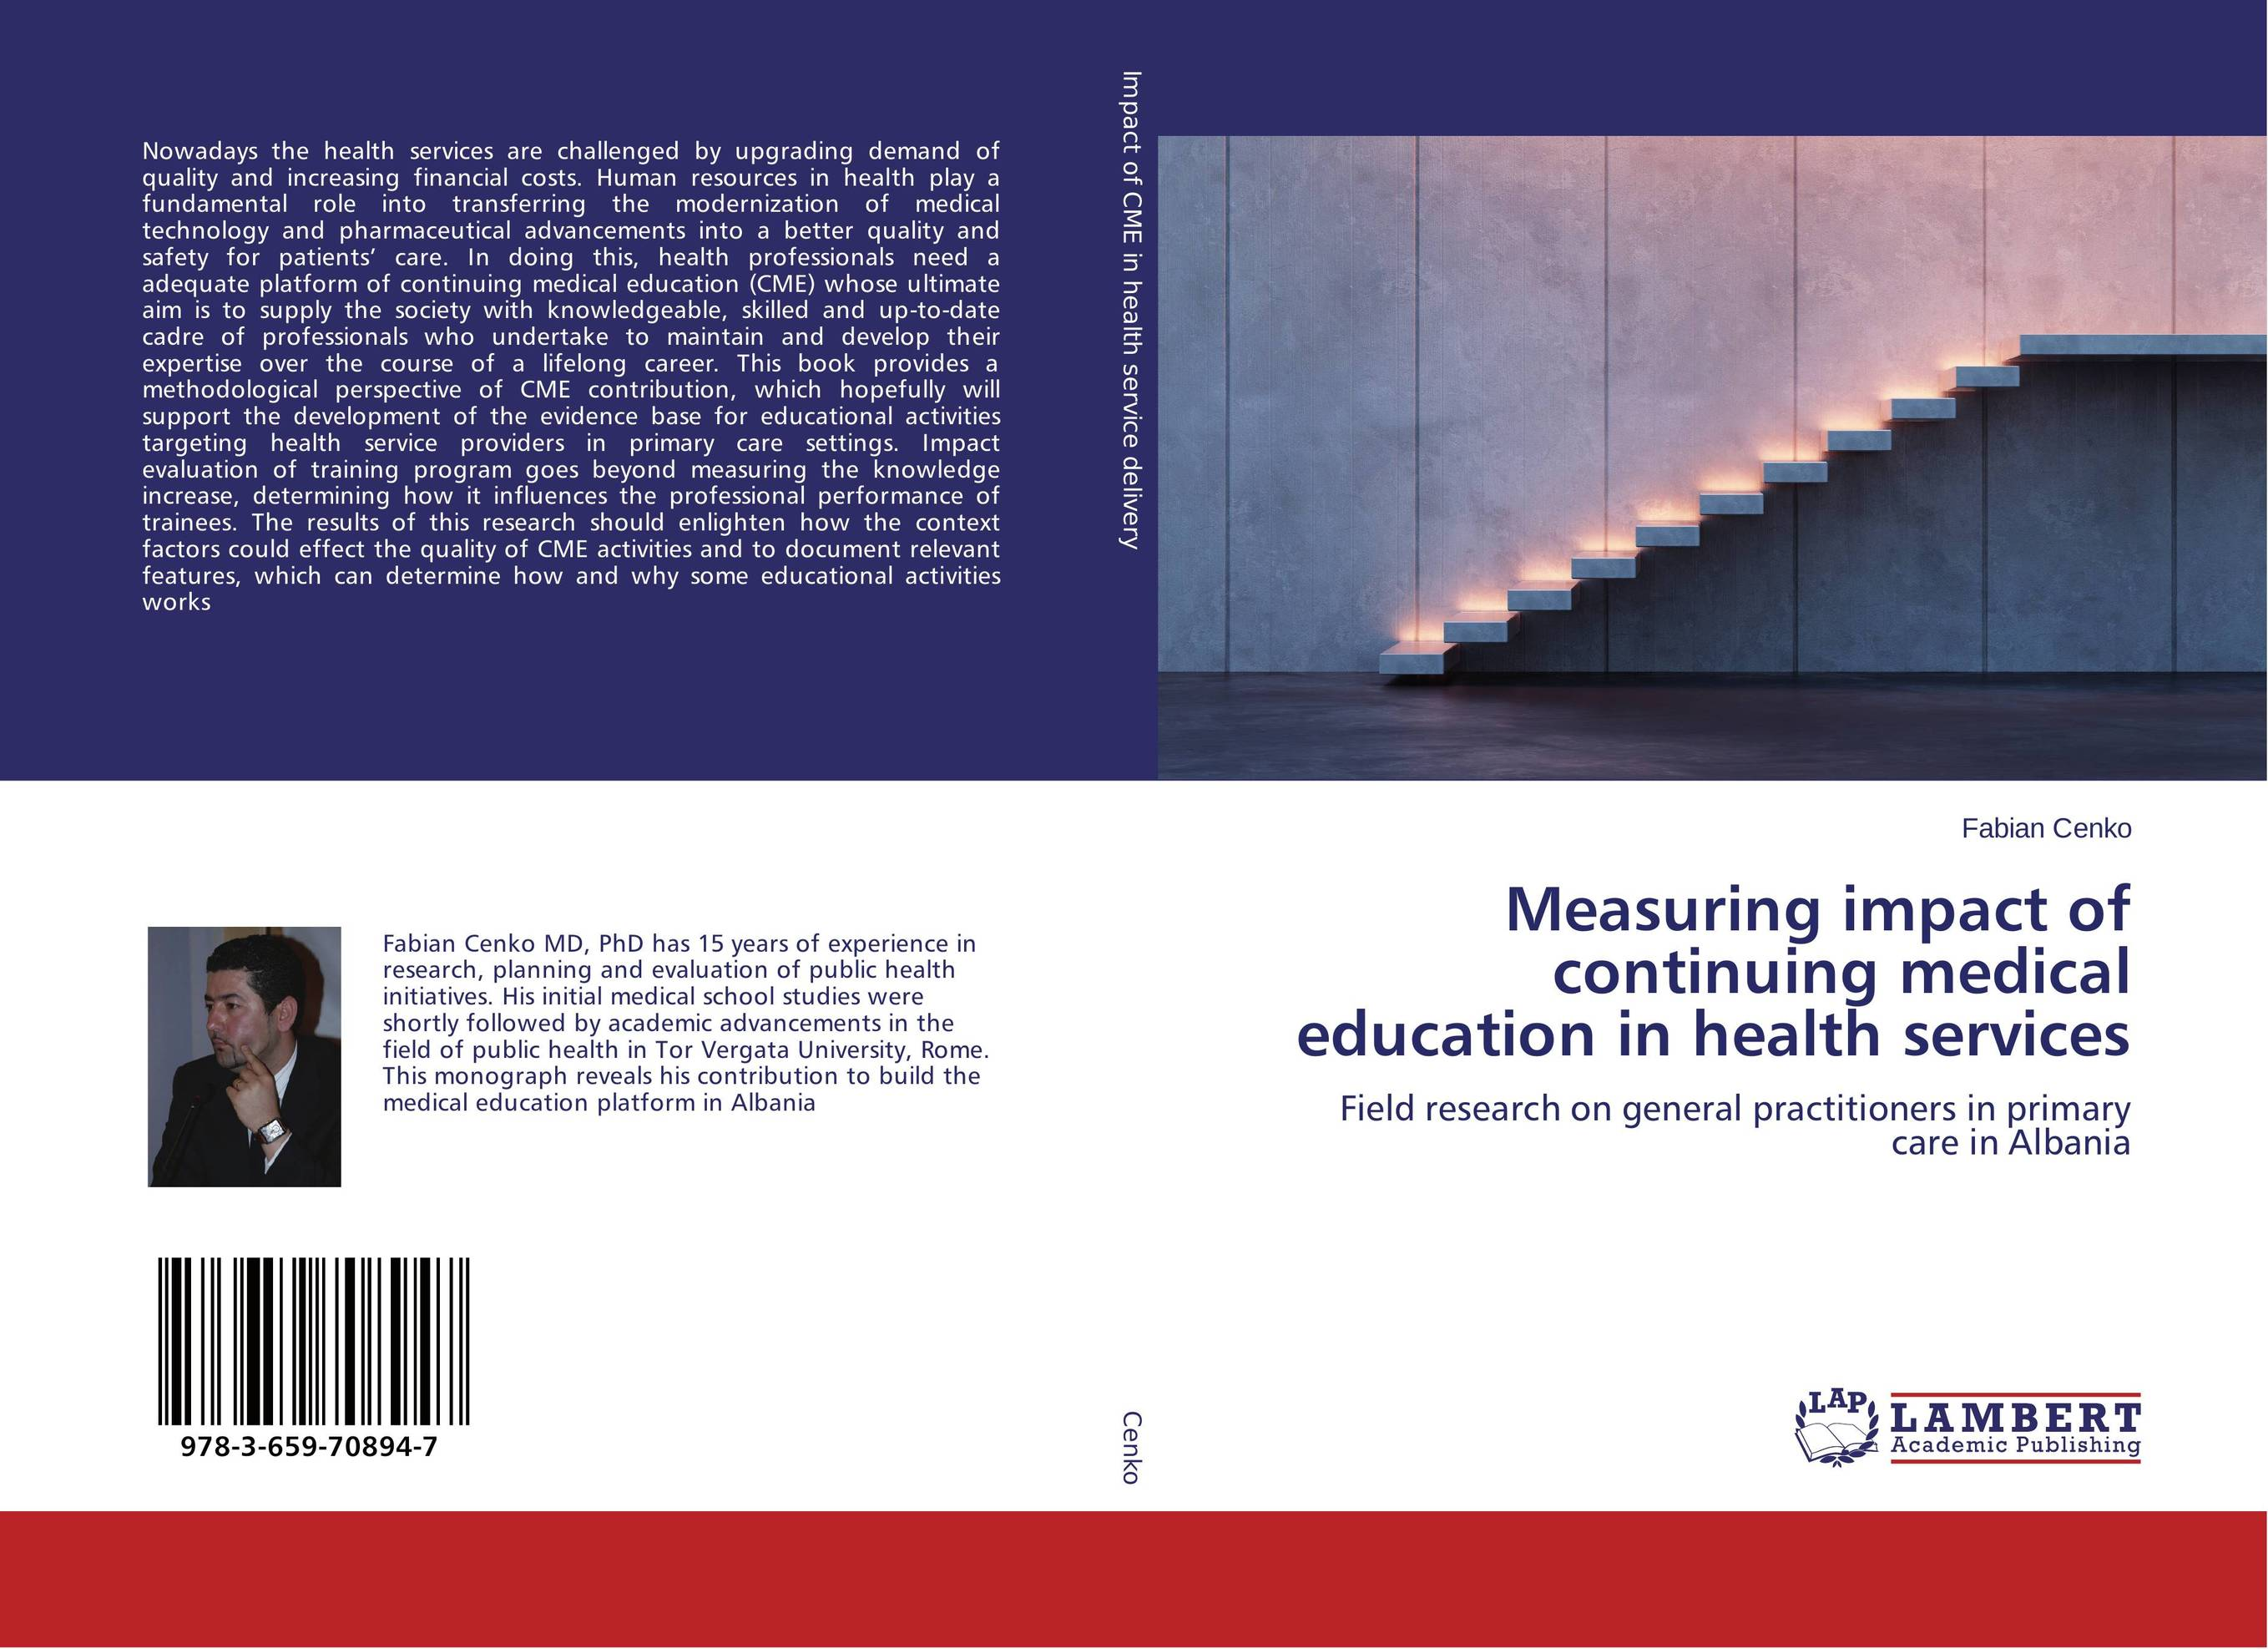 Measuring impact of continuing medical education in health services evaluation of the impact of a mega sporting event